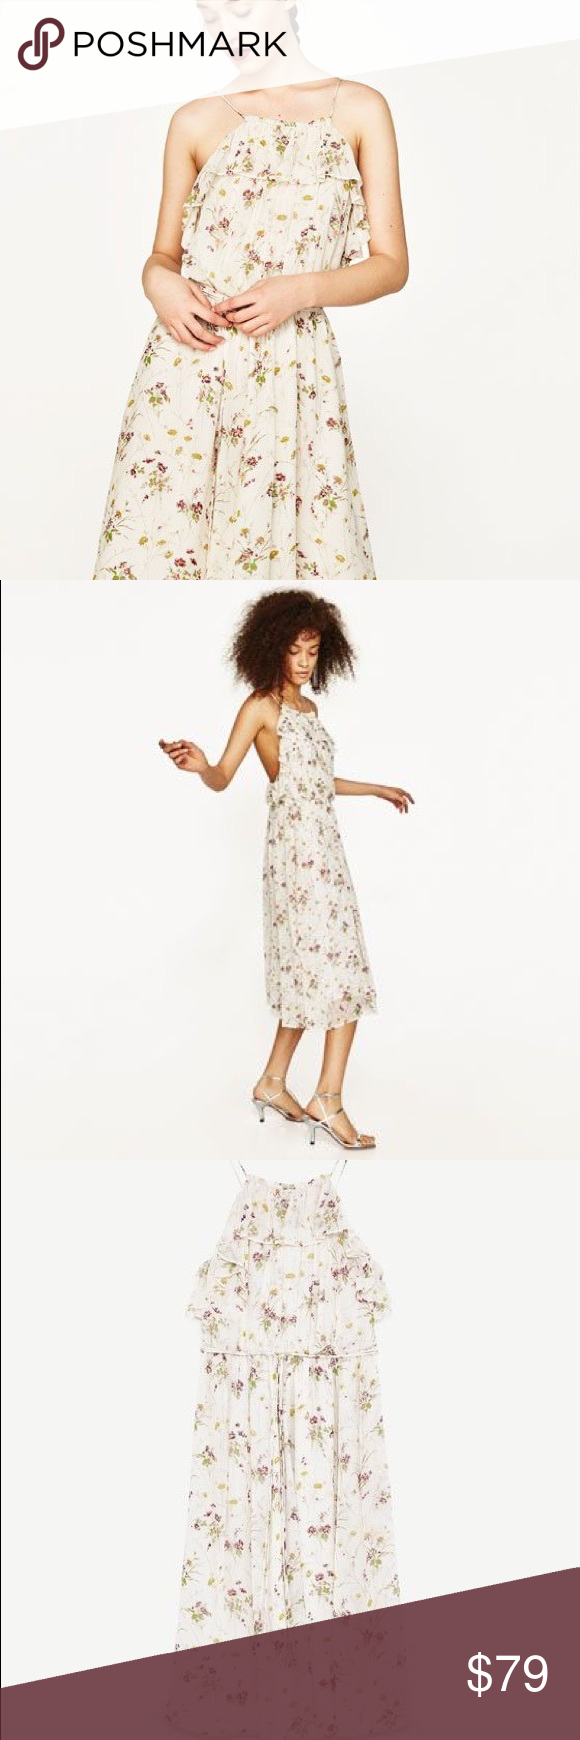 a613b0f7762a Zara off white floral dress Pretty pretty dress for spring/ summer....  sequins scattered throughout......love cream color with small floral print  Zara ...